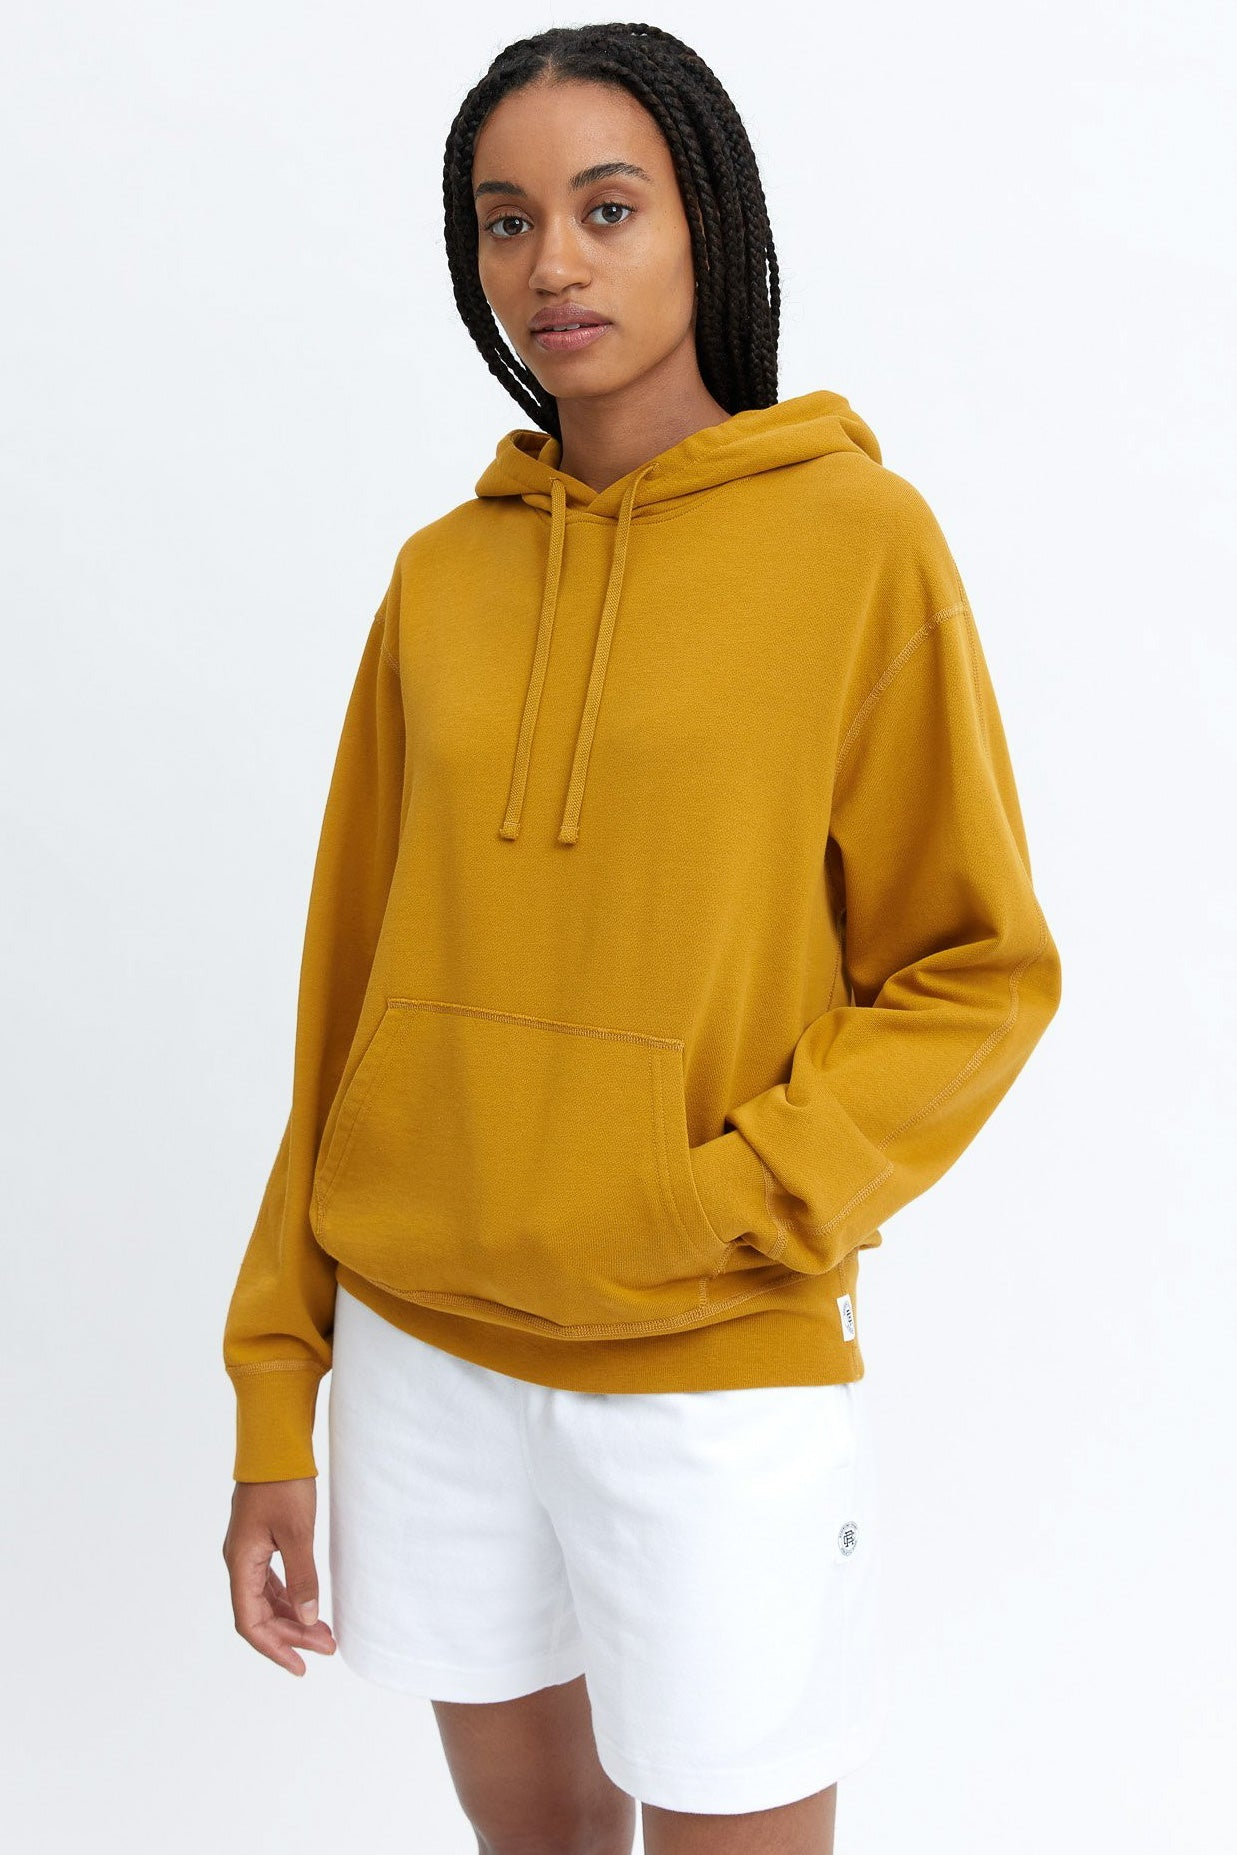 REIGNING CHAMP WOMENS LIGHTWEIGHT TERRY RELAXED HOODIE